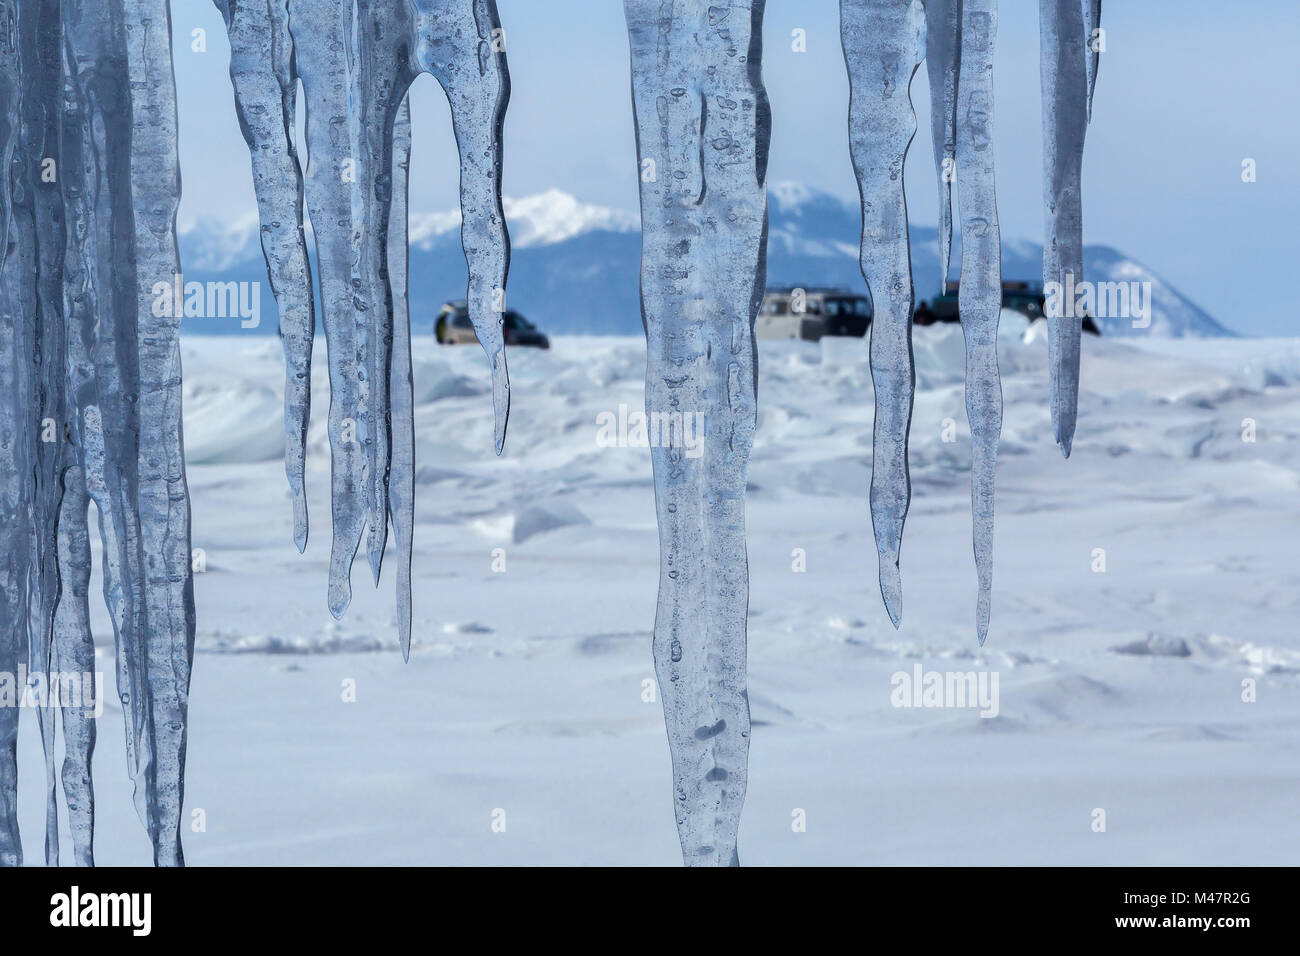 Curtain of icicles and tourist expedition on Baikal ice. - Stock Image